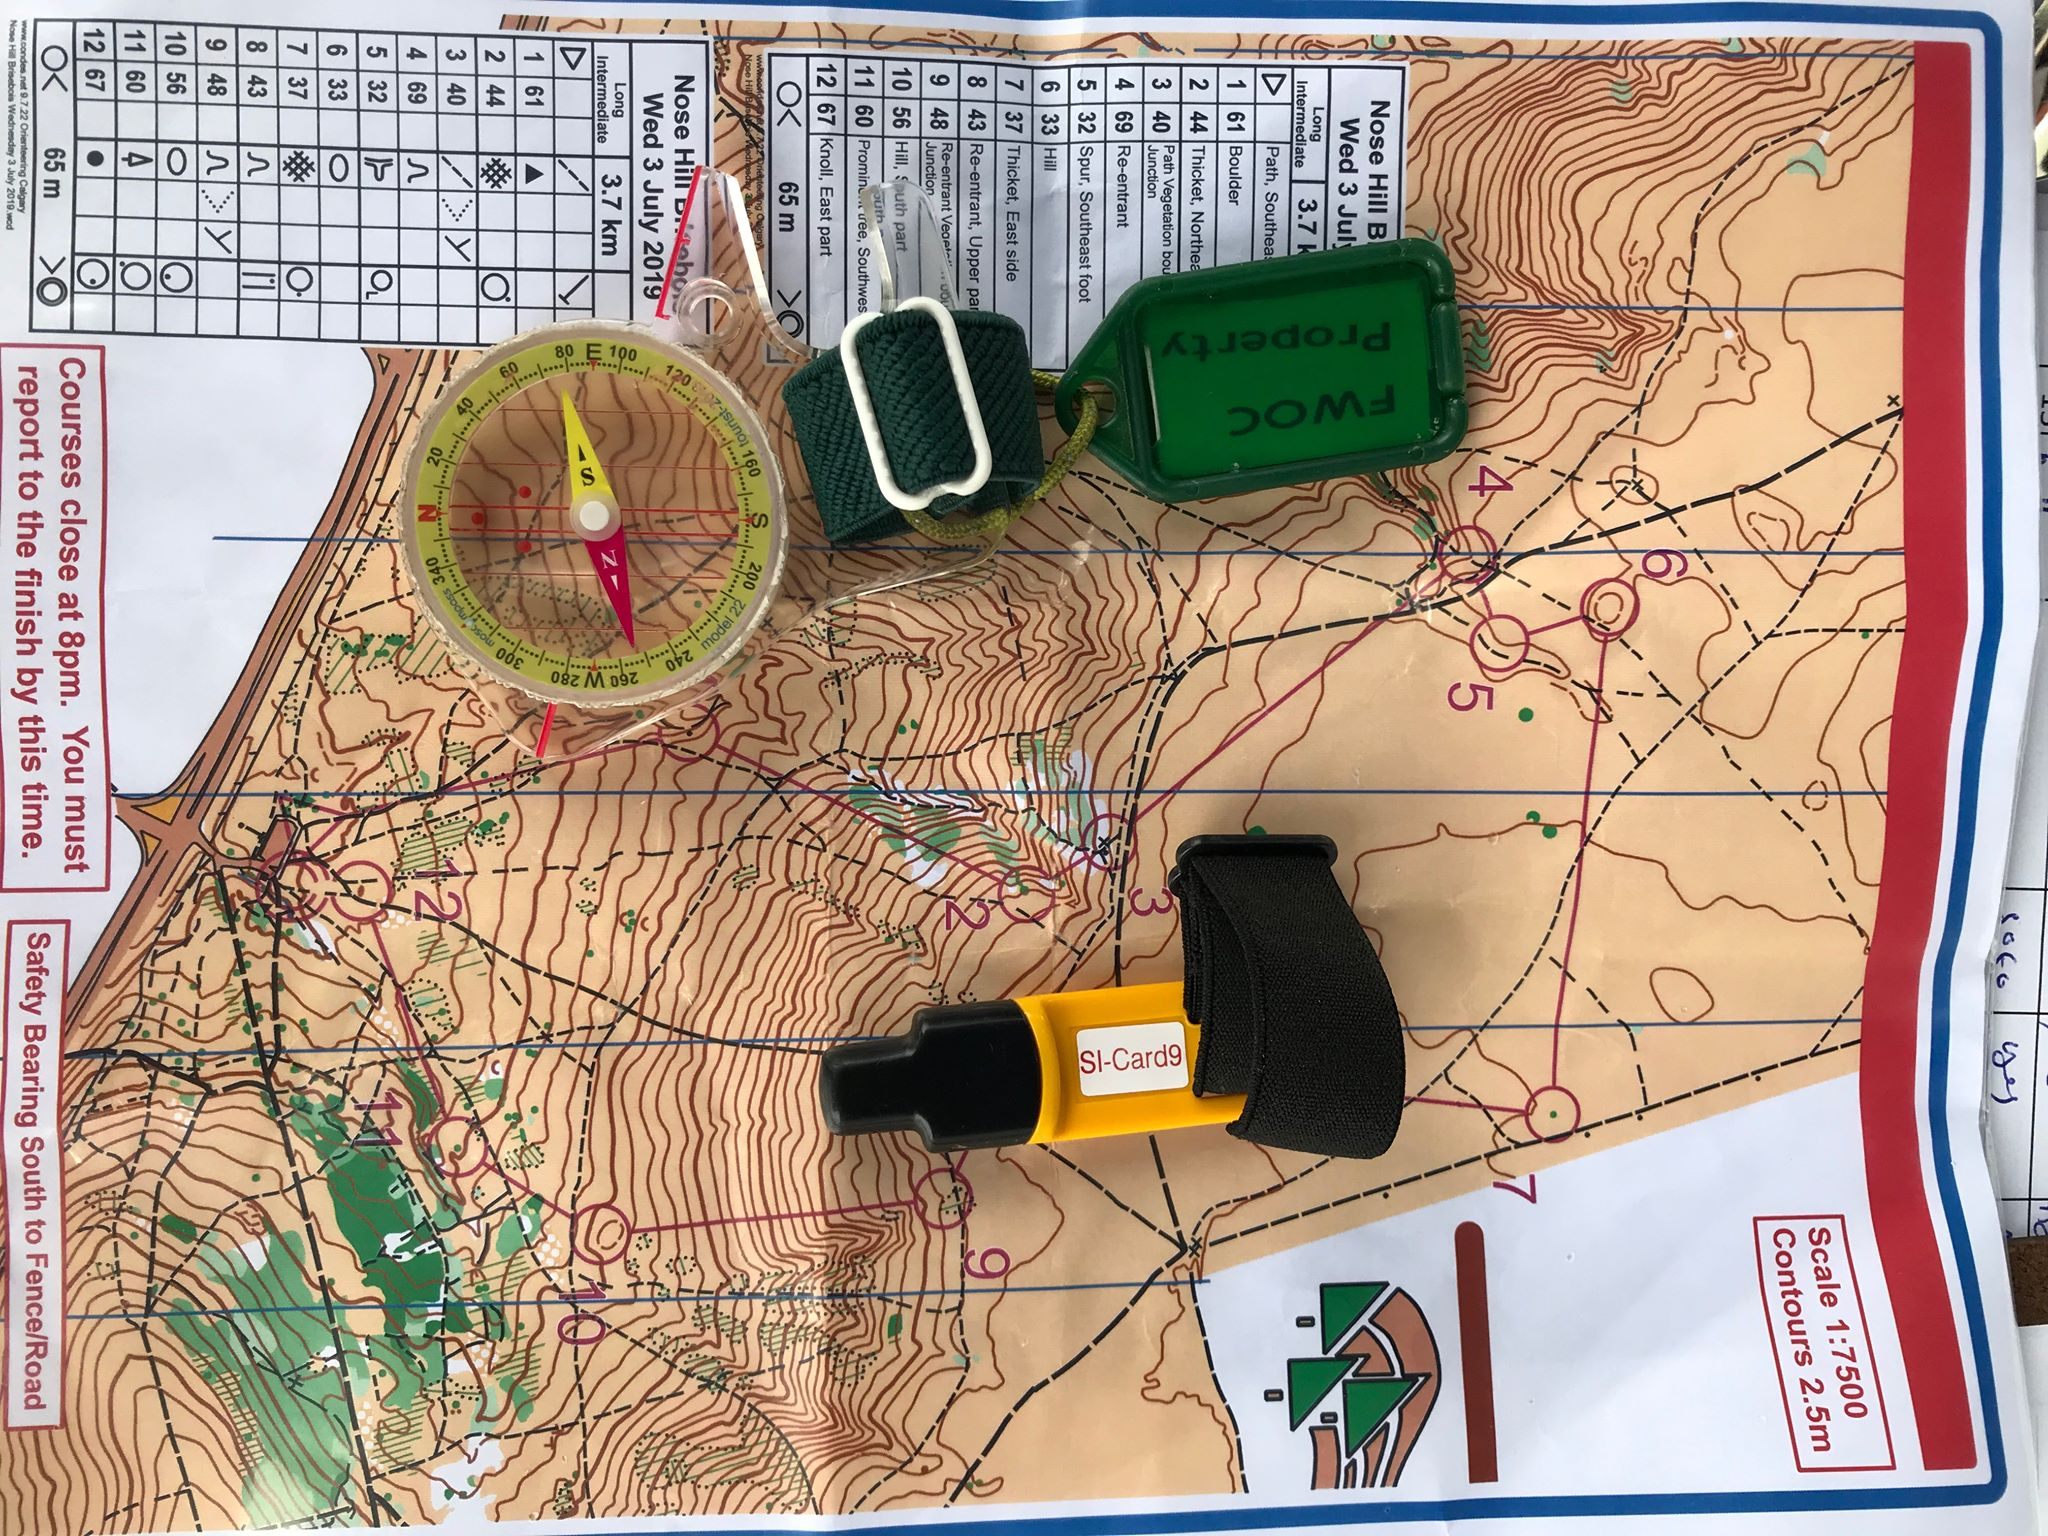 My Orienteering gear (compass, finger stick and my map)